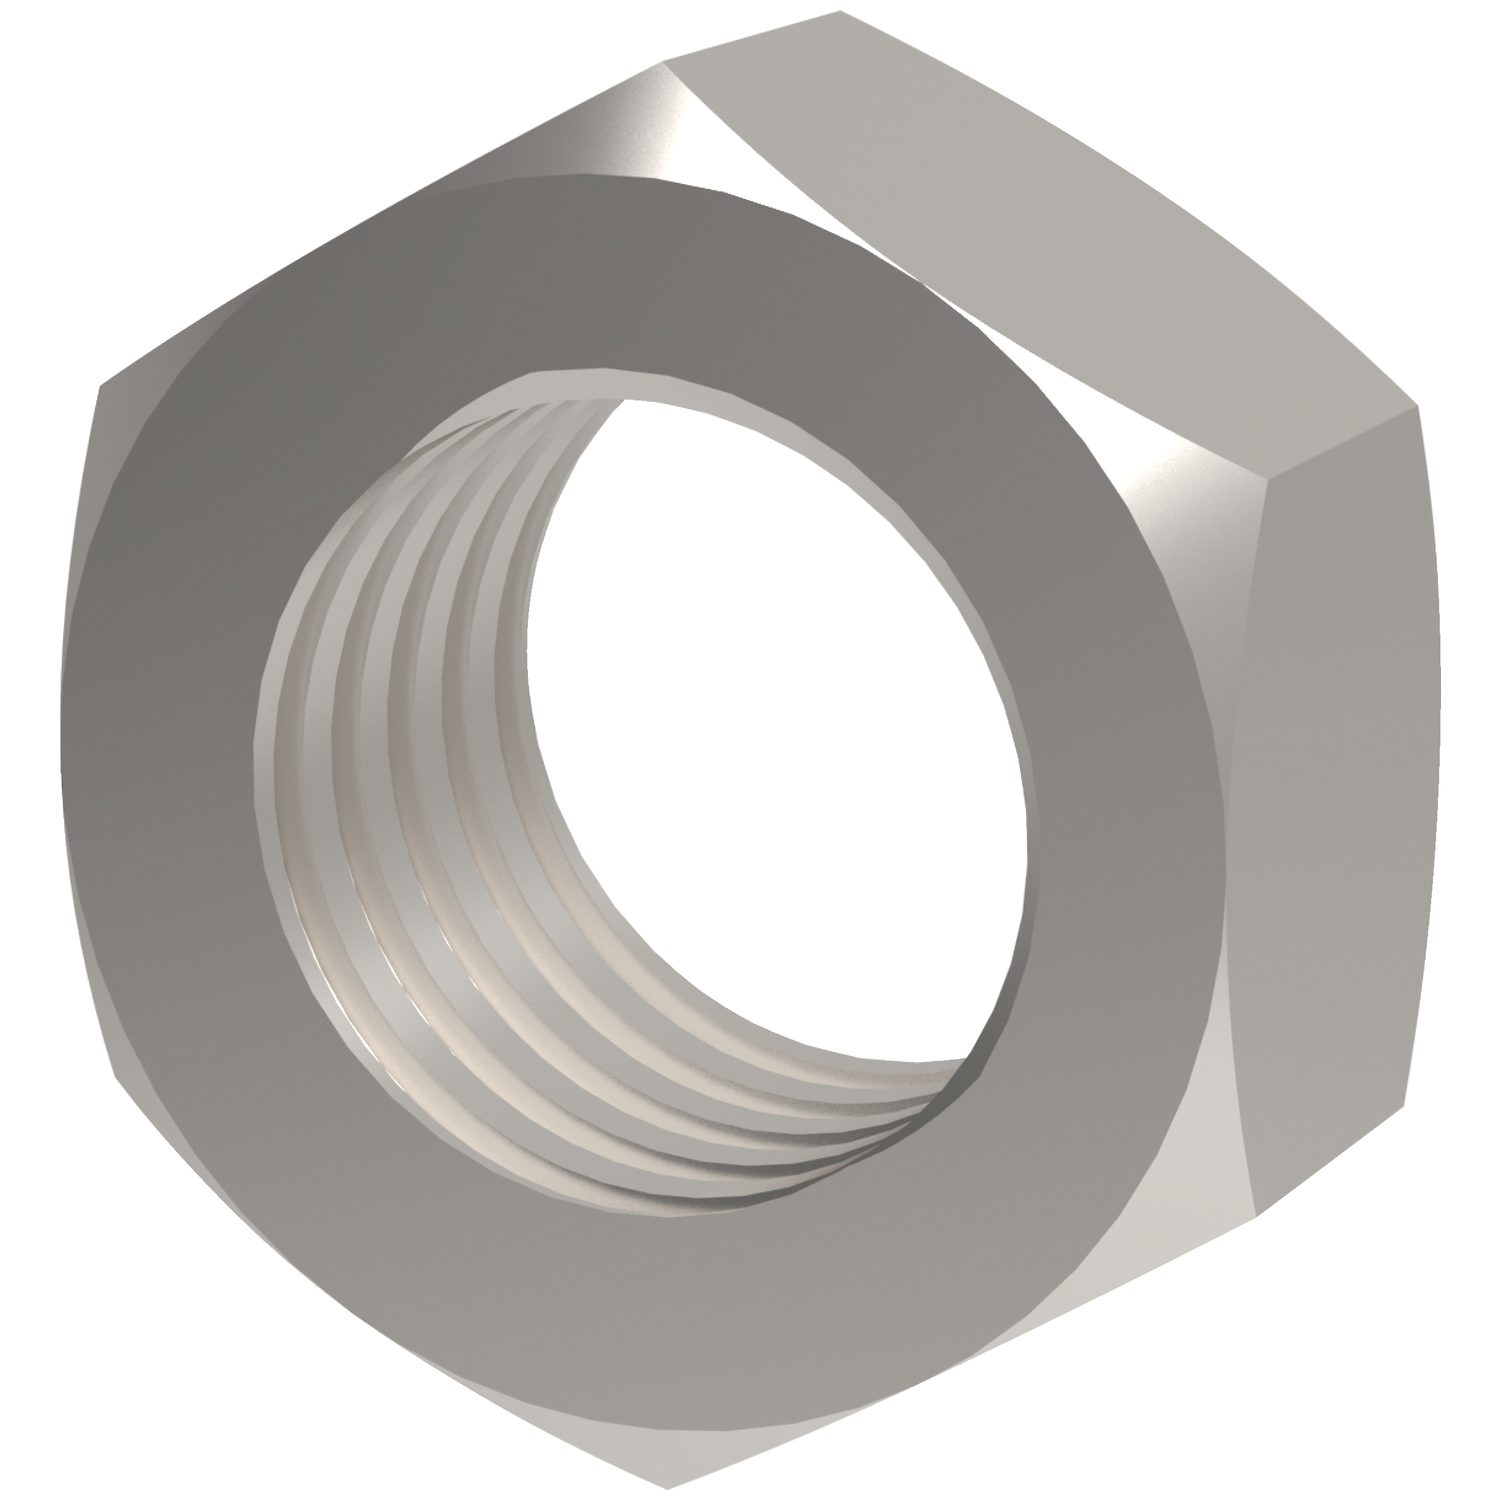 Full Nuts Coarse Thread Stainless steel A2. Nuts and washers are manufactured to DIN 934